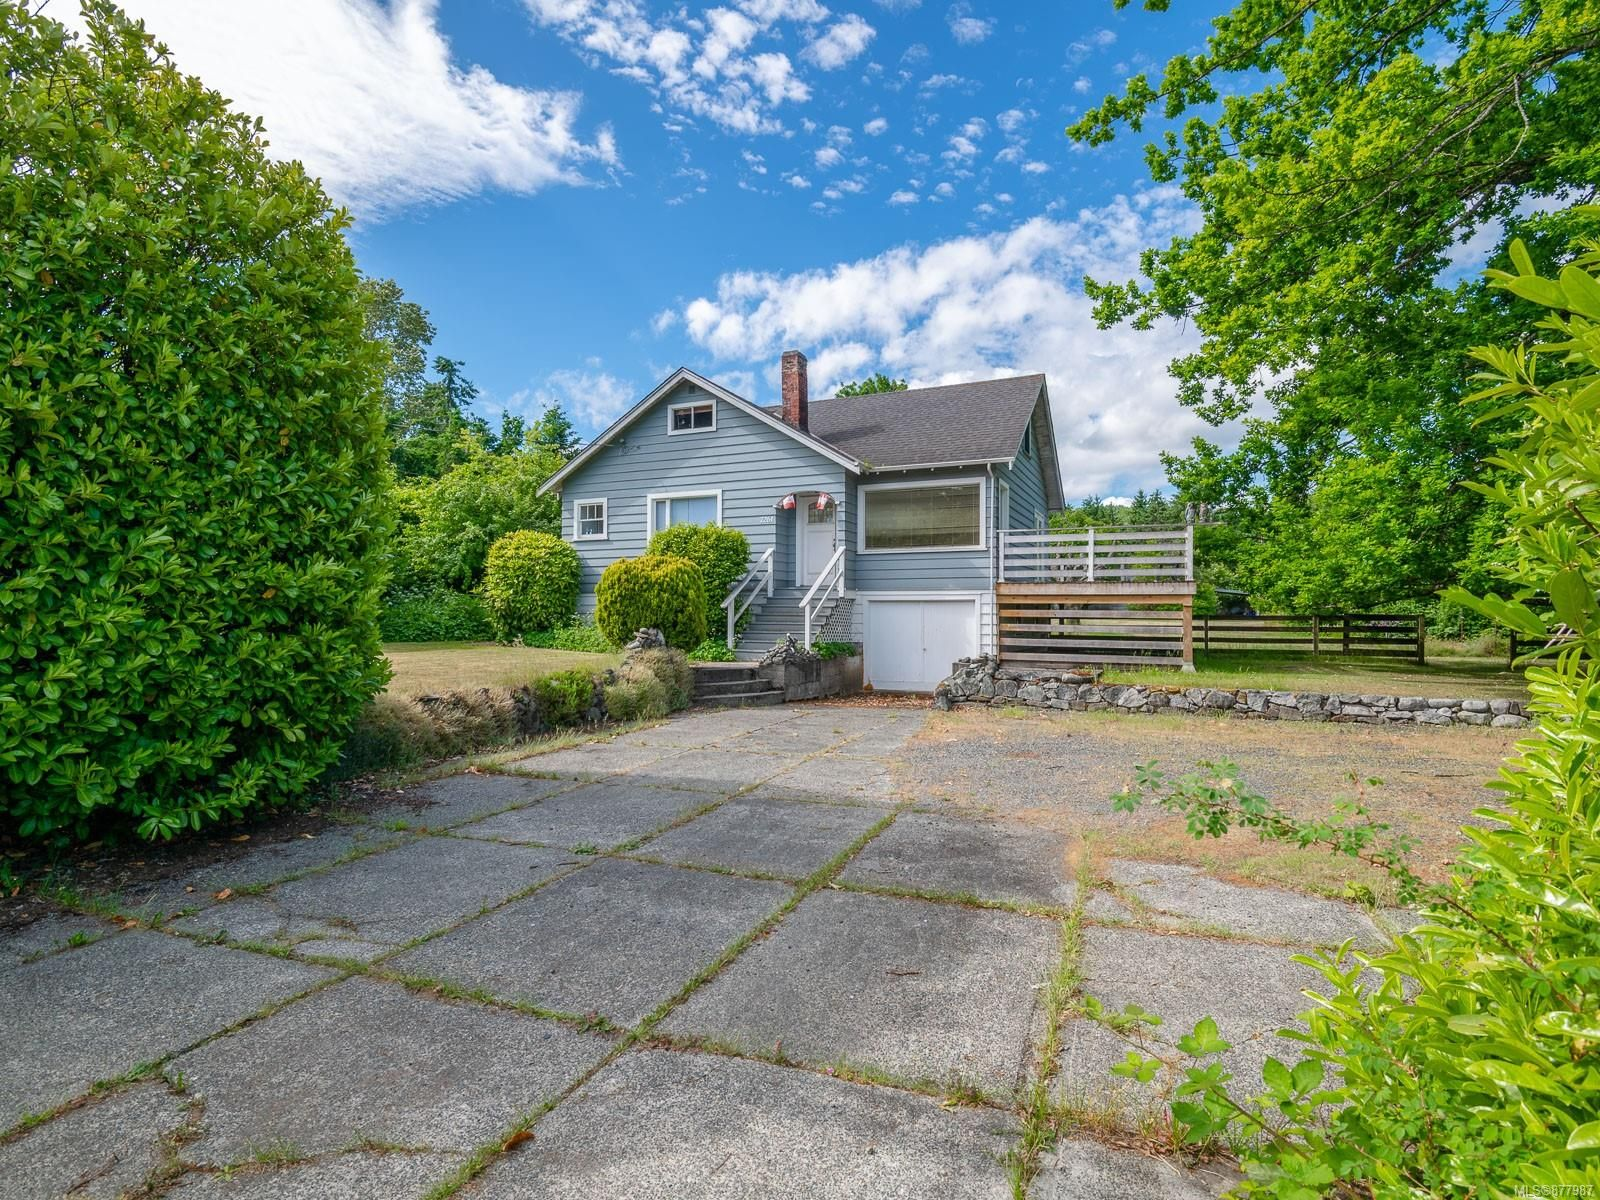 Main Photo: 7261 Lantzville Rd in : Na Lower Lantzville House for sale (Nanaimo)  : MLS®# 877987